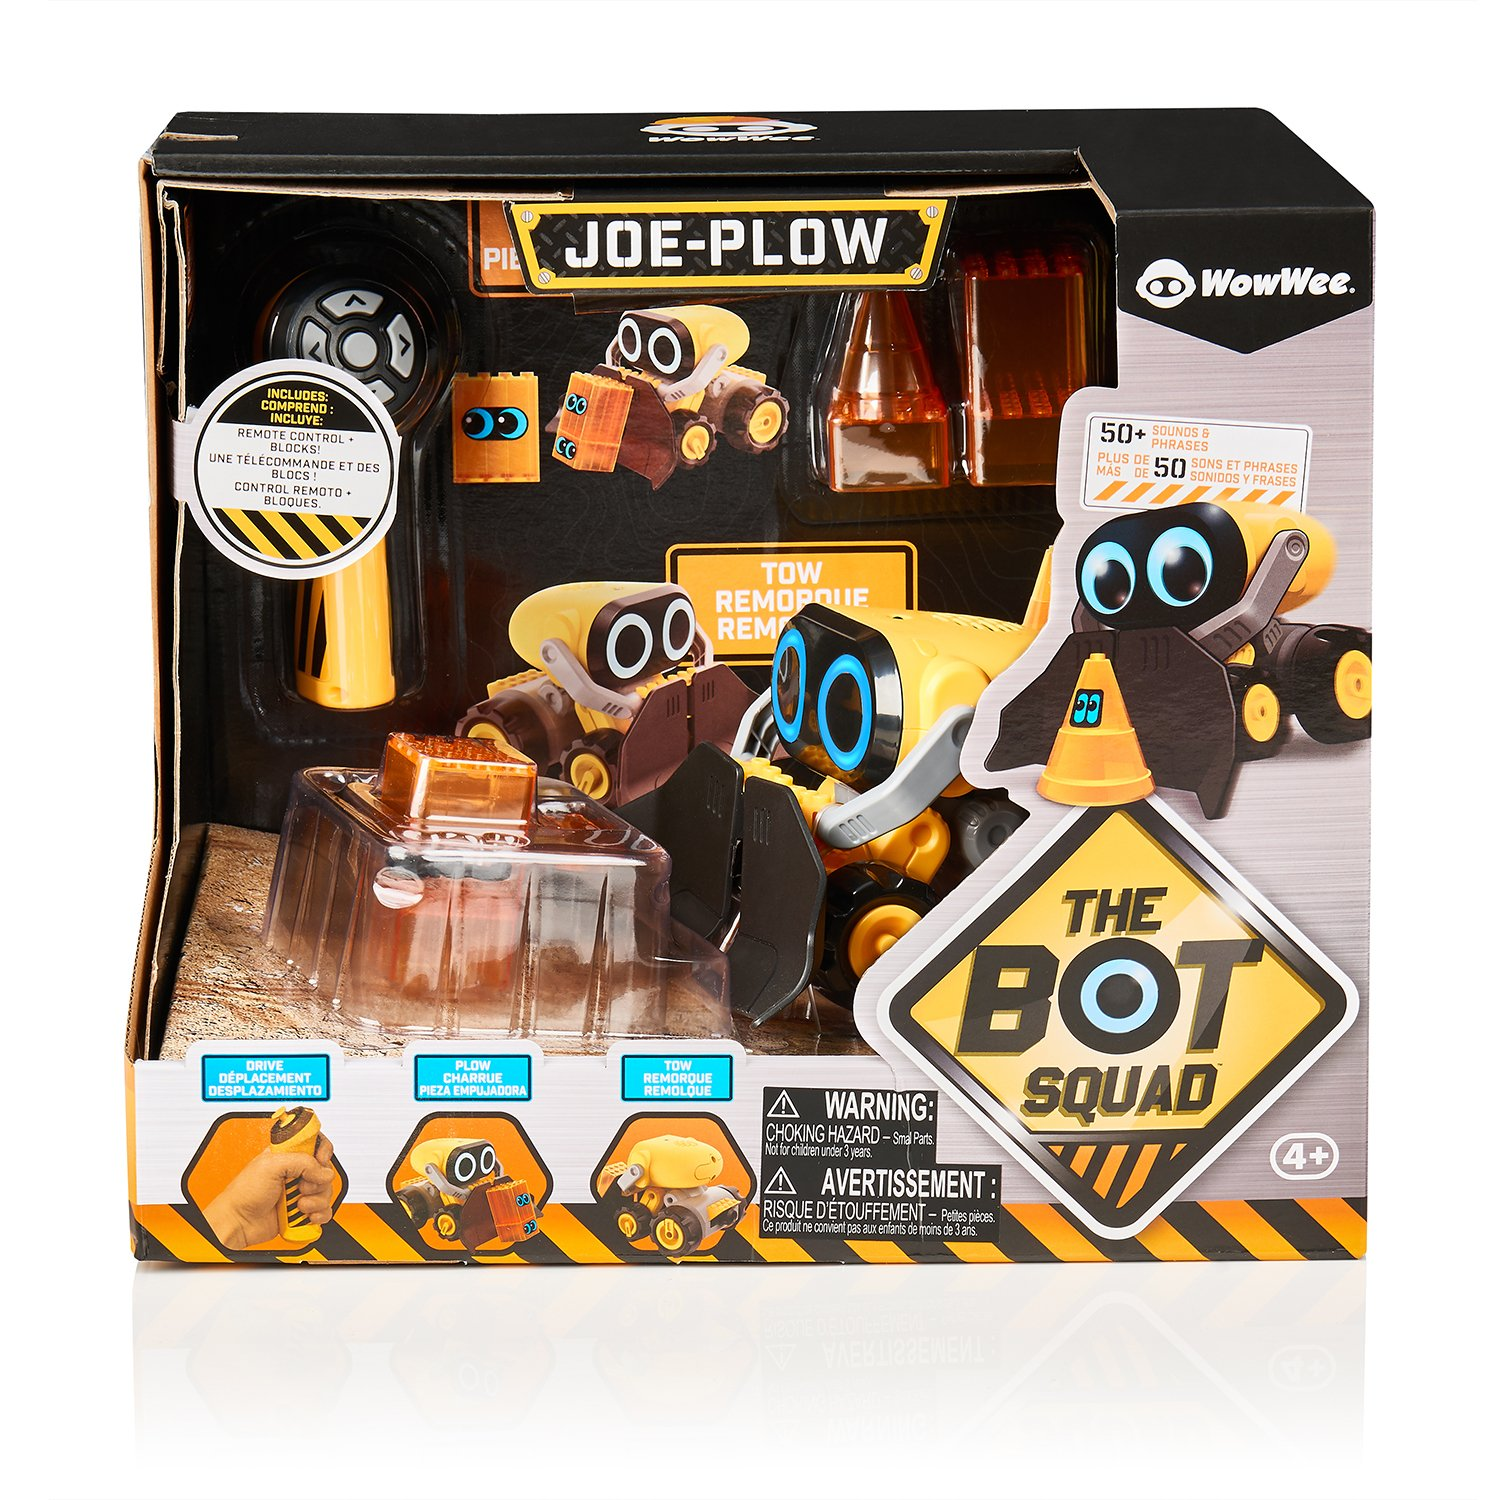 The Botsquad - Joe Plow - the path clearing remote control interactive robot toy -  by WowWee by WowWee (Image #9)